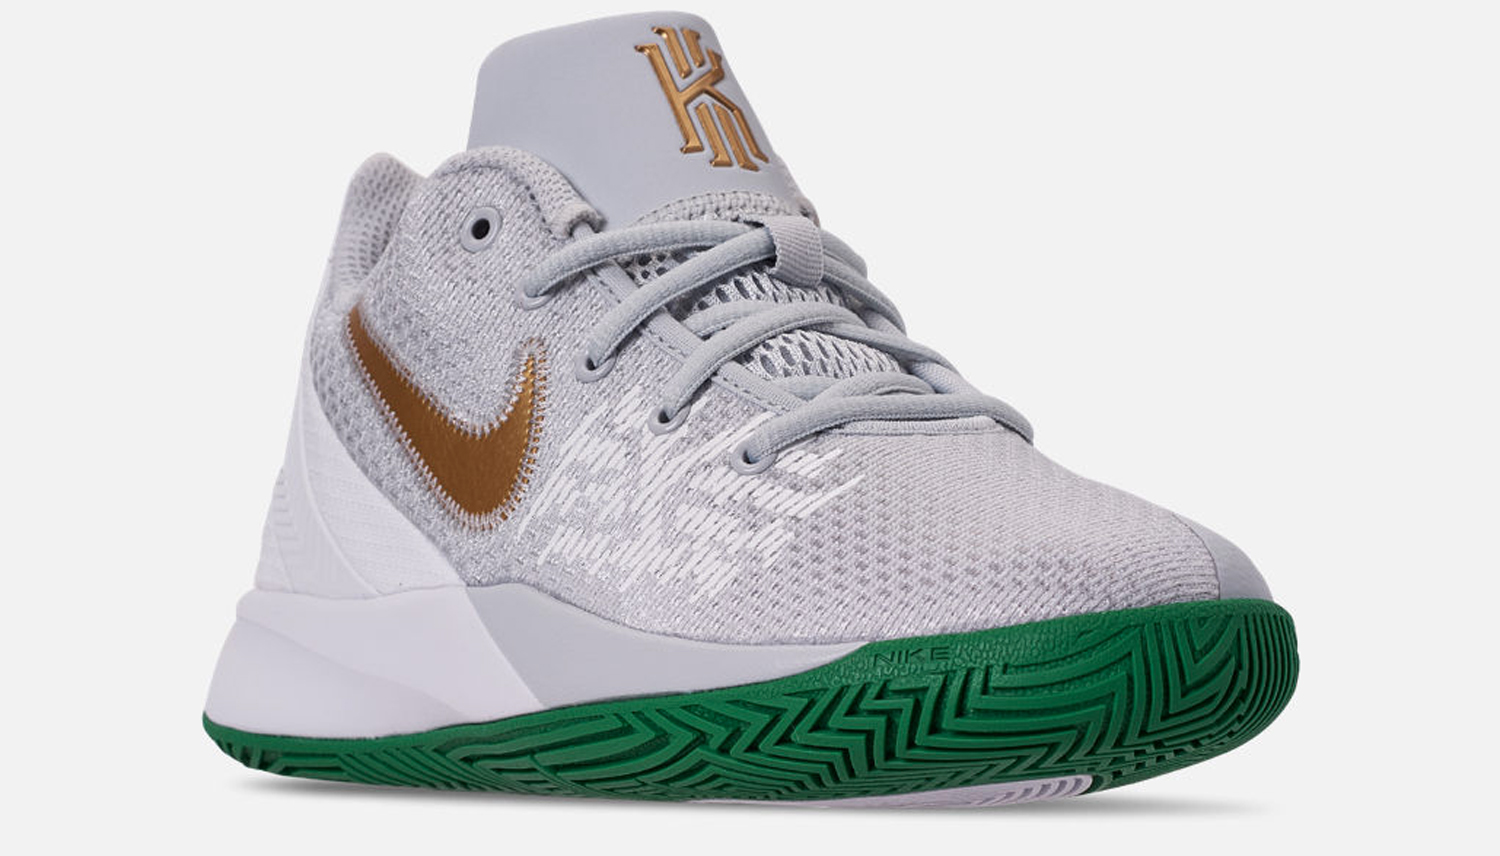 The Nike Kyrie Flytrap 2 is Available